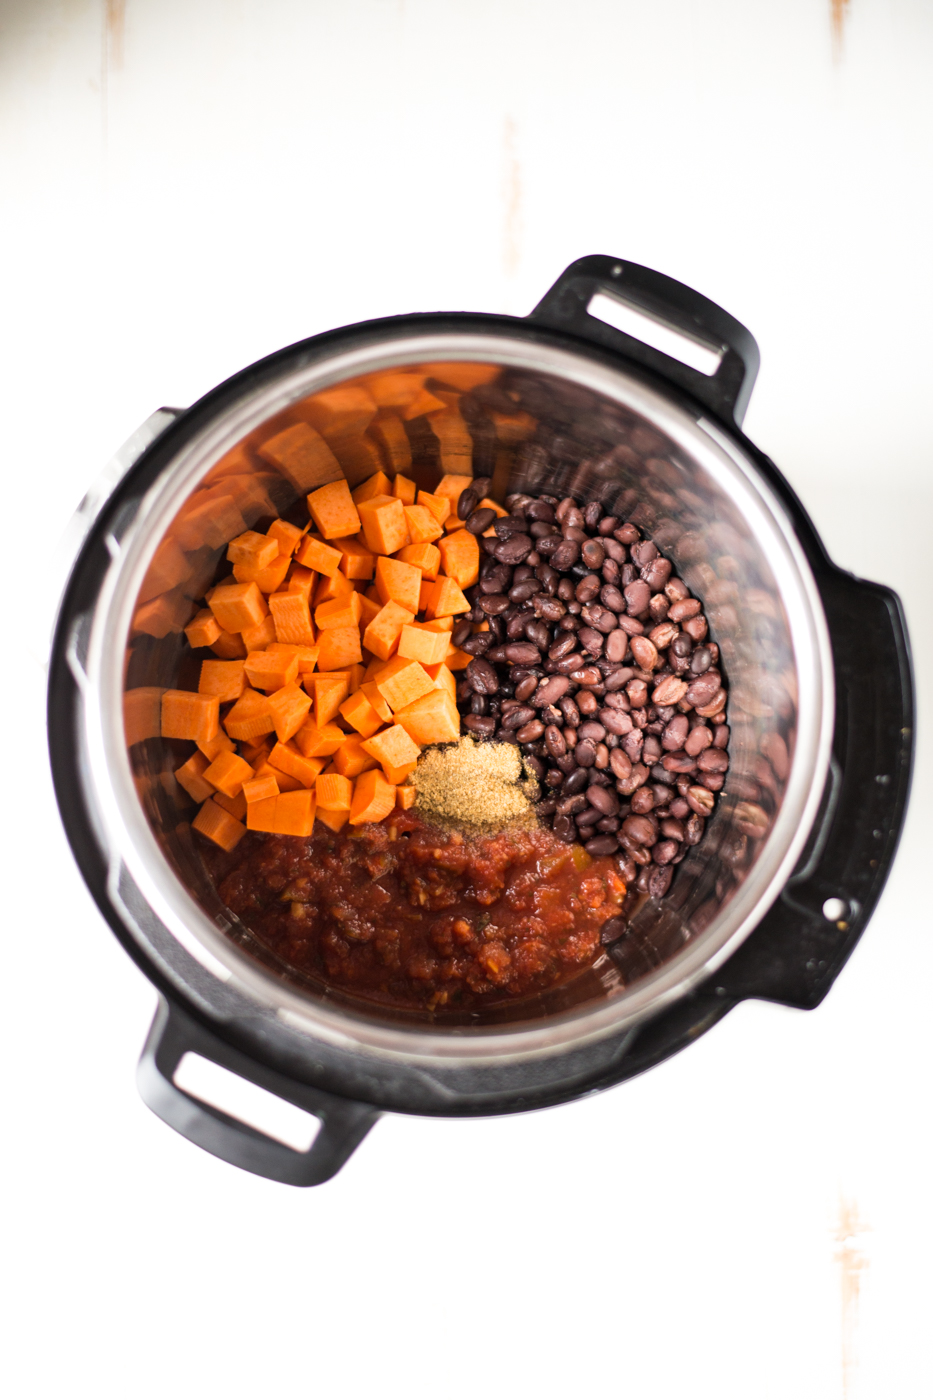 5-Ingredient Black Bean & Sweet Potato Chili is simple to prepare, totally nourishing, and absolutely delicious. Just throw a few ingredients it in the slow cooker or pressure cooker, and dinner is ready! #realfoodwholelife #realfoodwholeliferecipe #glutenfree #glutenfreerecipe #dairyfree #dairyfreerecipe #healthy #healthyrecipe #easyrecipe #quickrecipe #cleaneating #slowcooker #crockpot #instantpot